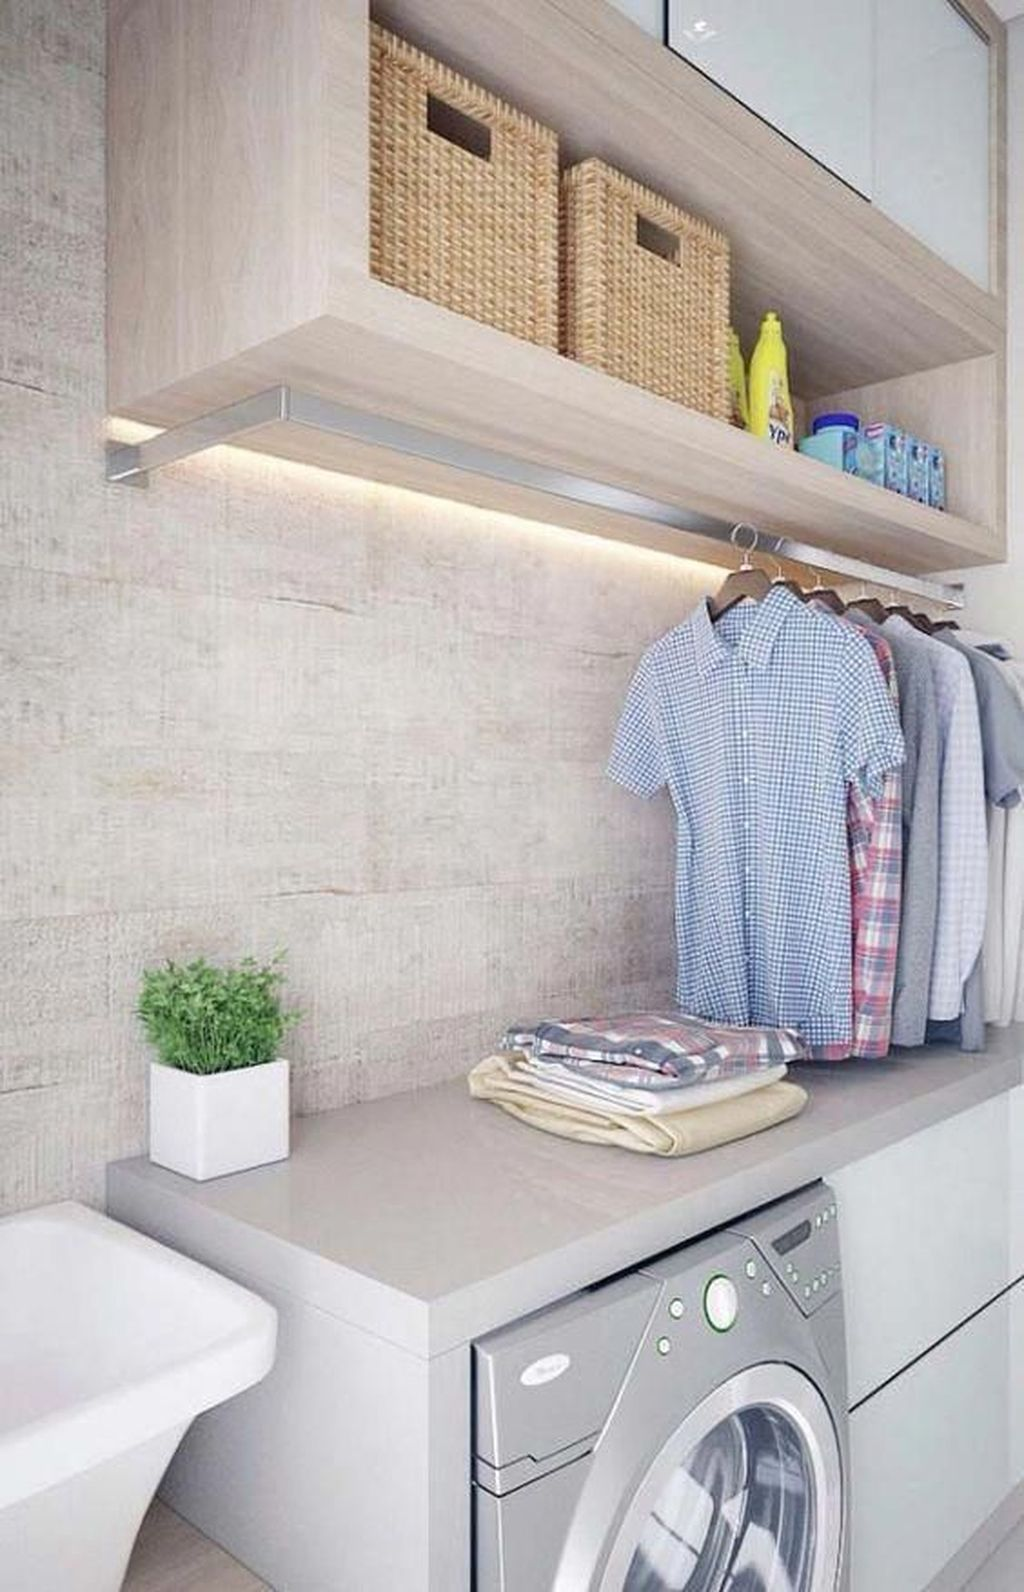 Inspiring Small Laundry Room Design And Decor Ideas 05